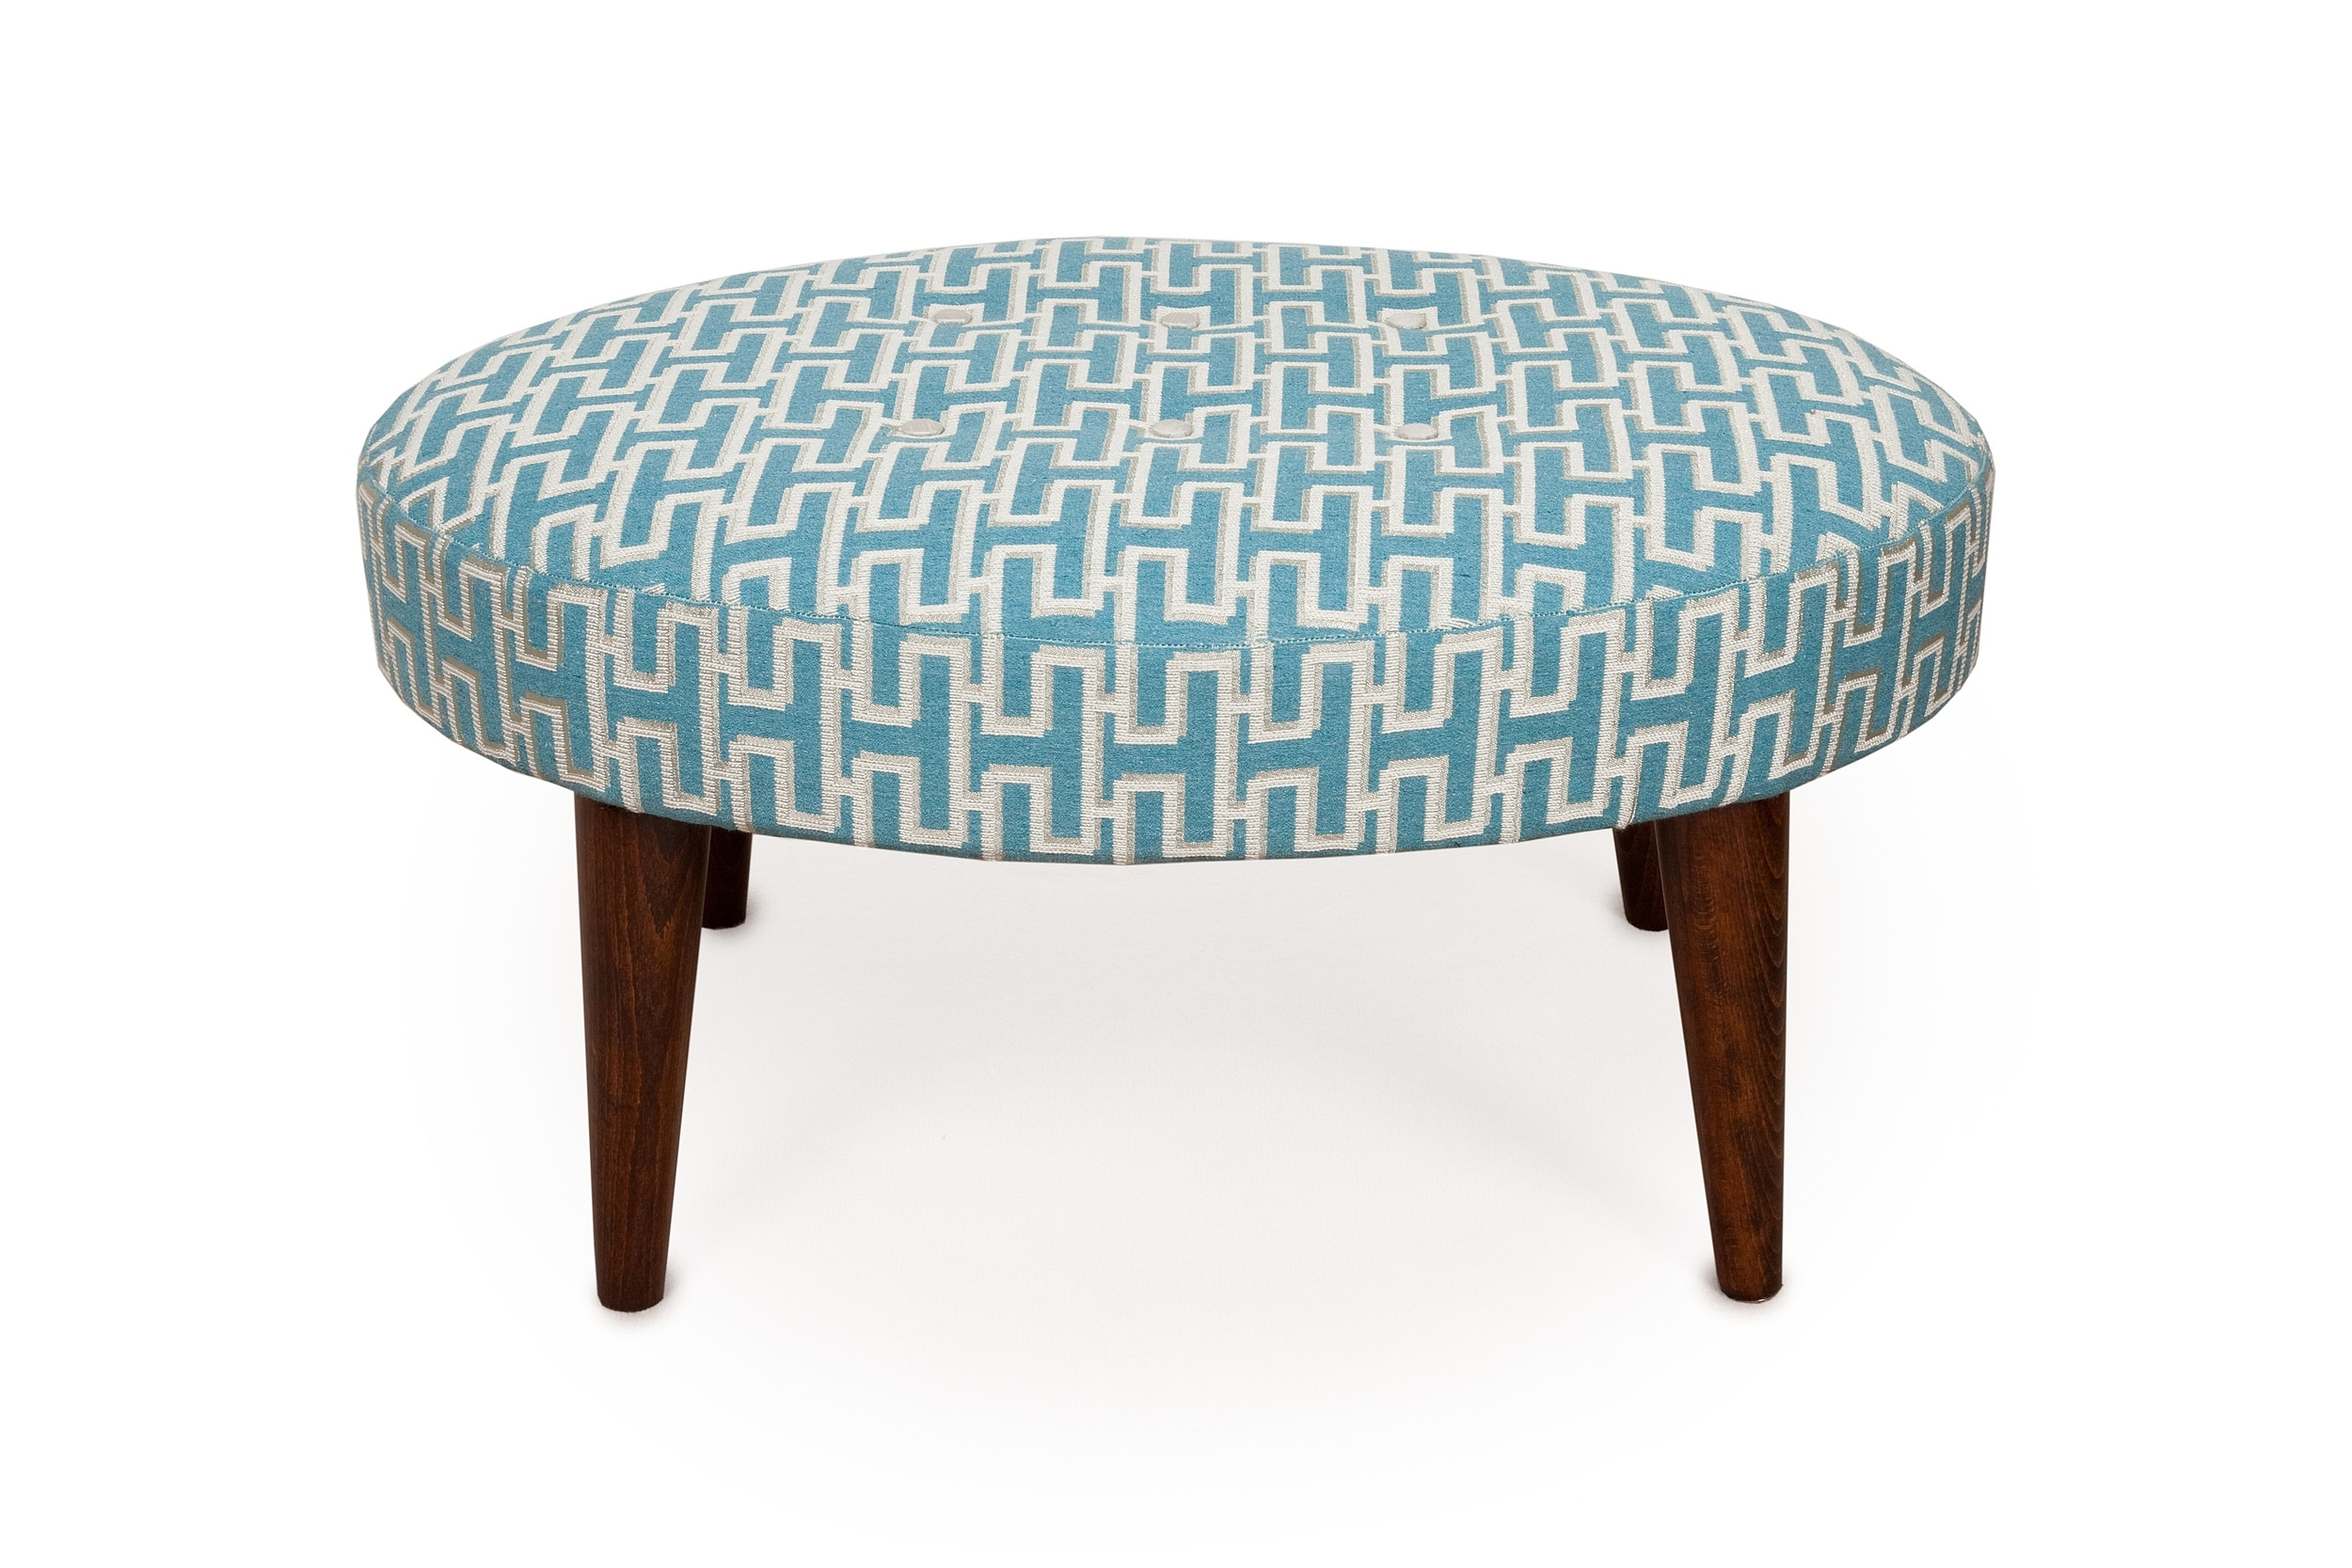 Small oval buttoned stool £295 + fabric